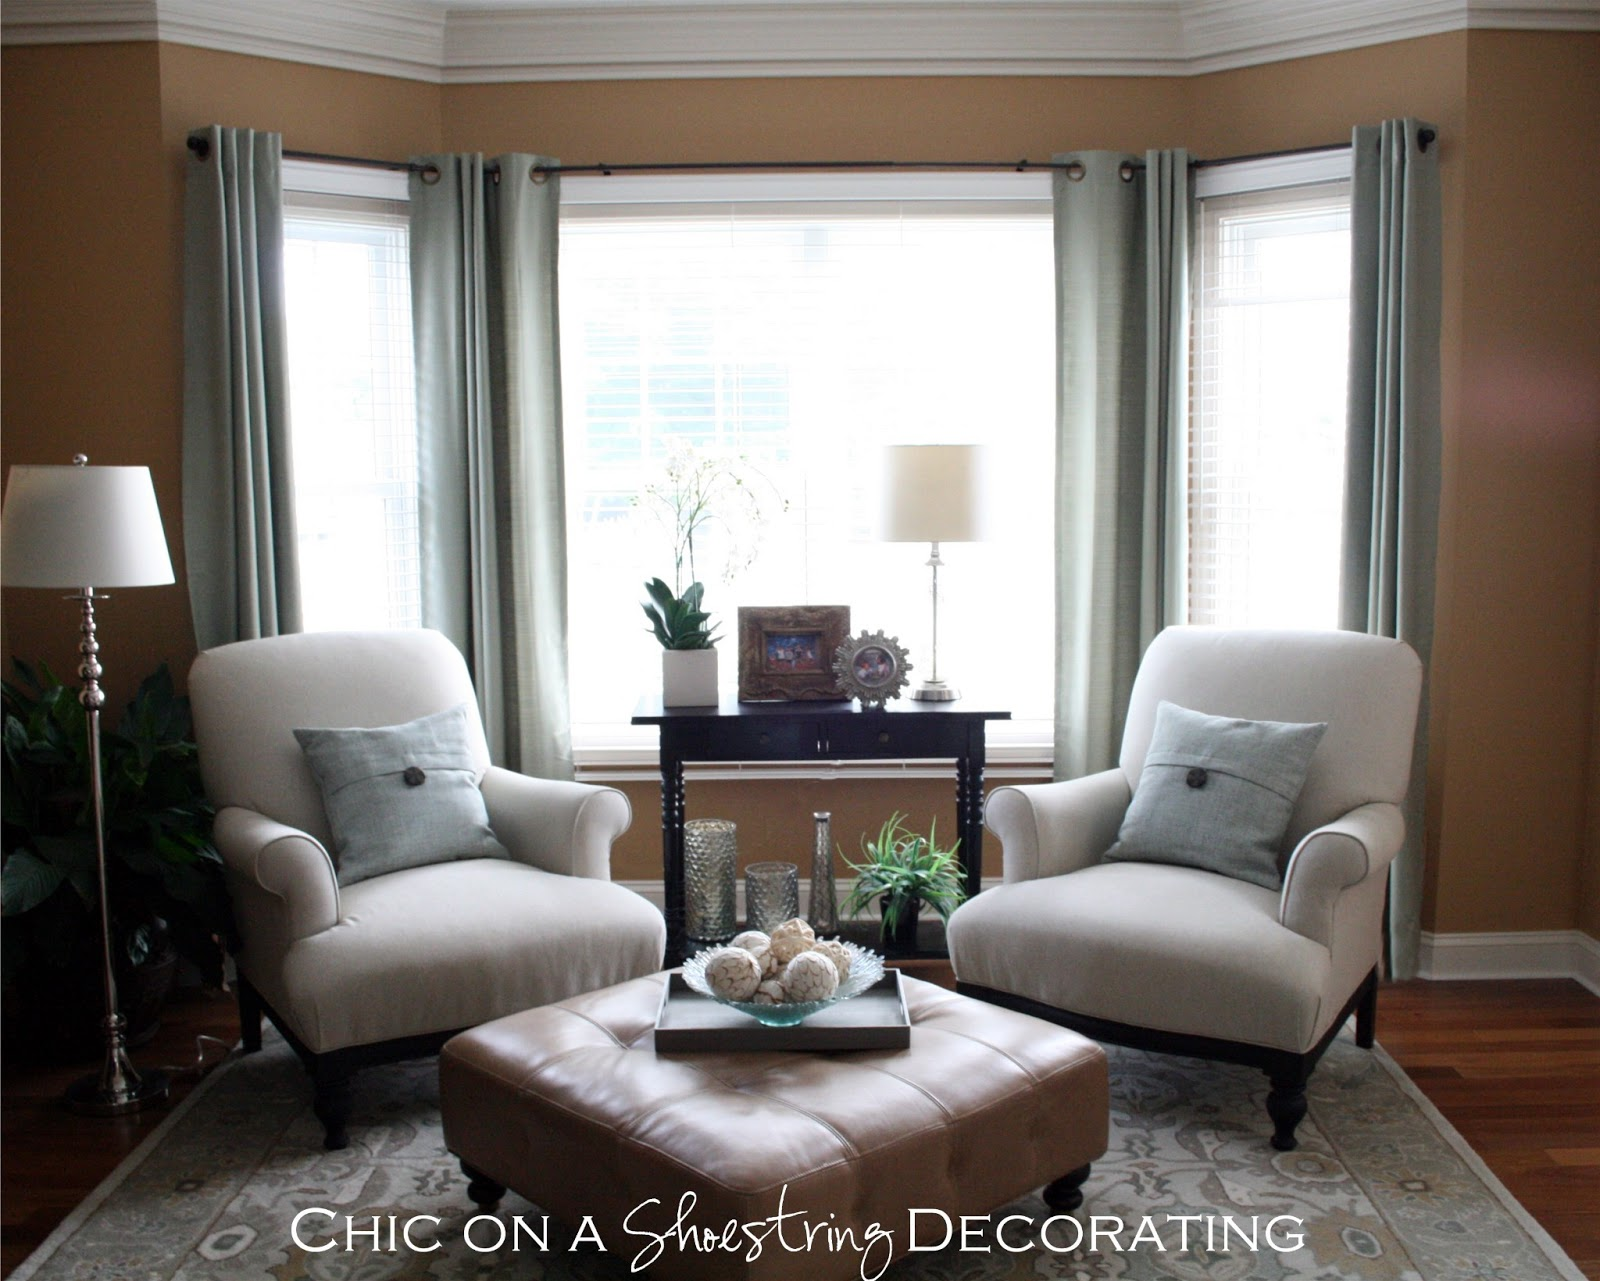 Seating Ideas For A Small Living Room: Chic On A Shoestring Decorating: Grand Piano Living Room